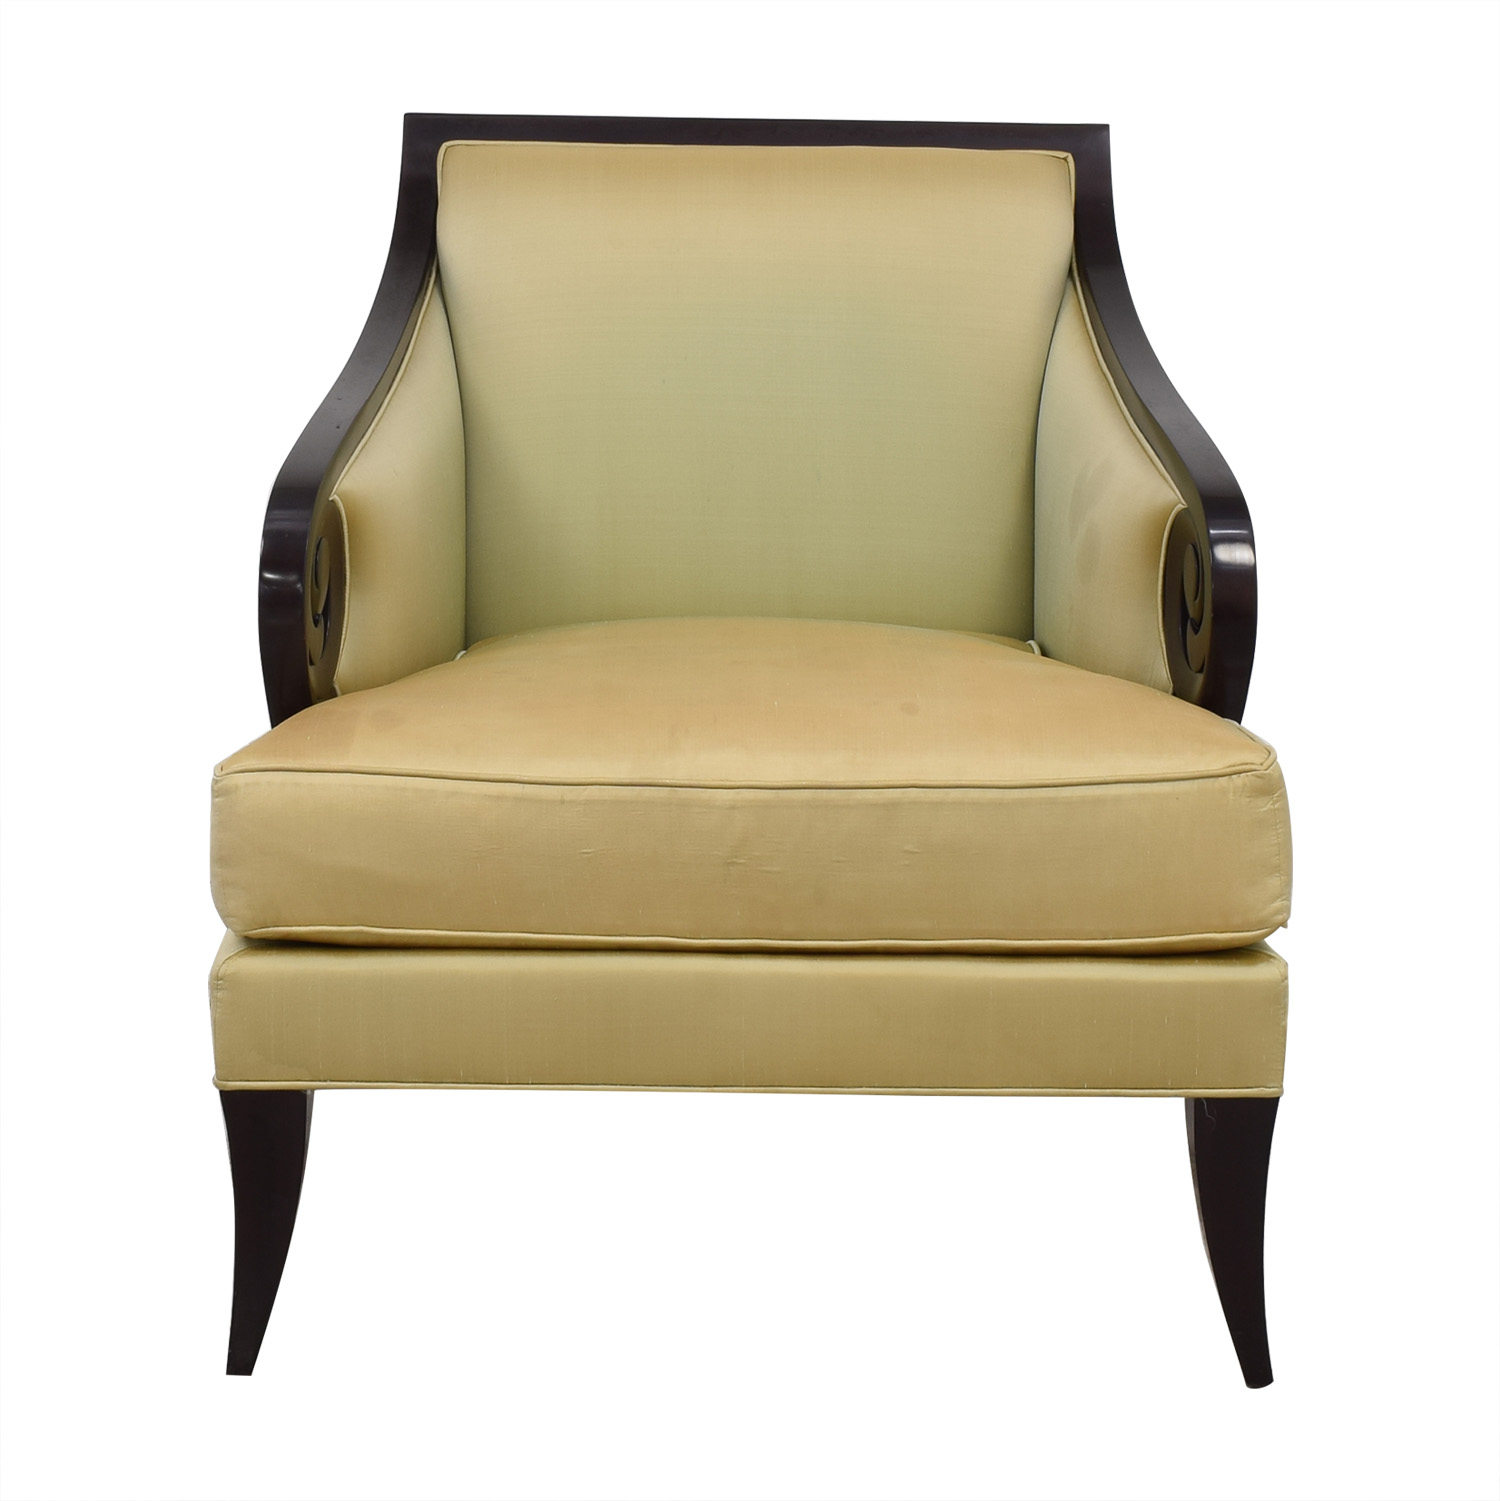 buy Christopher Guy Ornate Arm Chair Christopher Guy Chairs